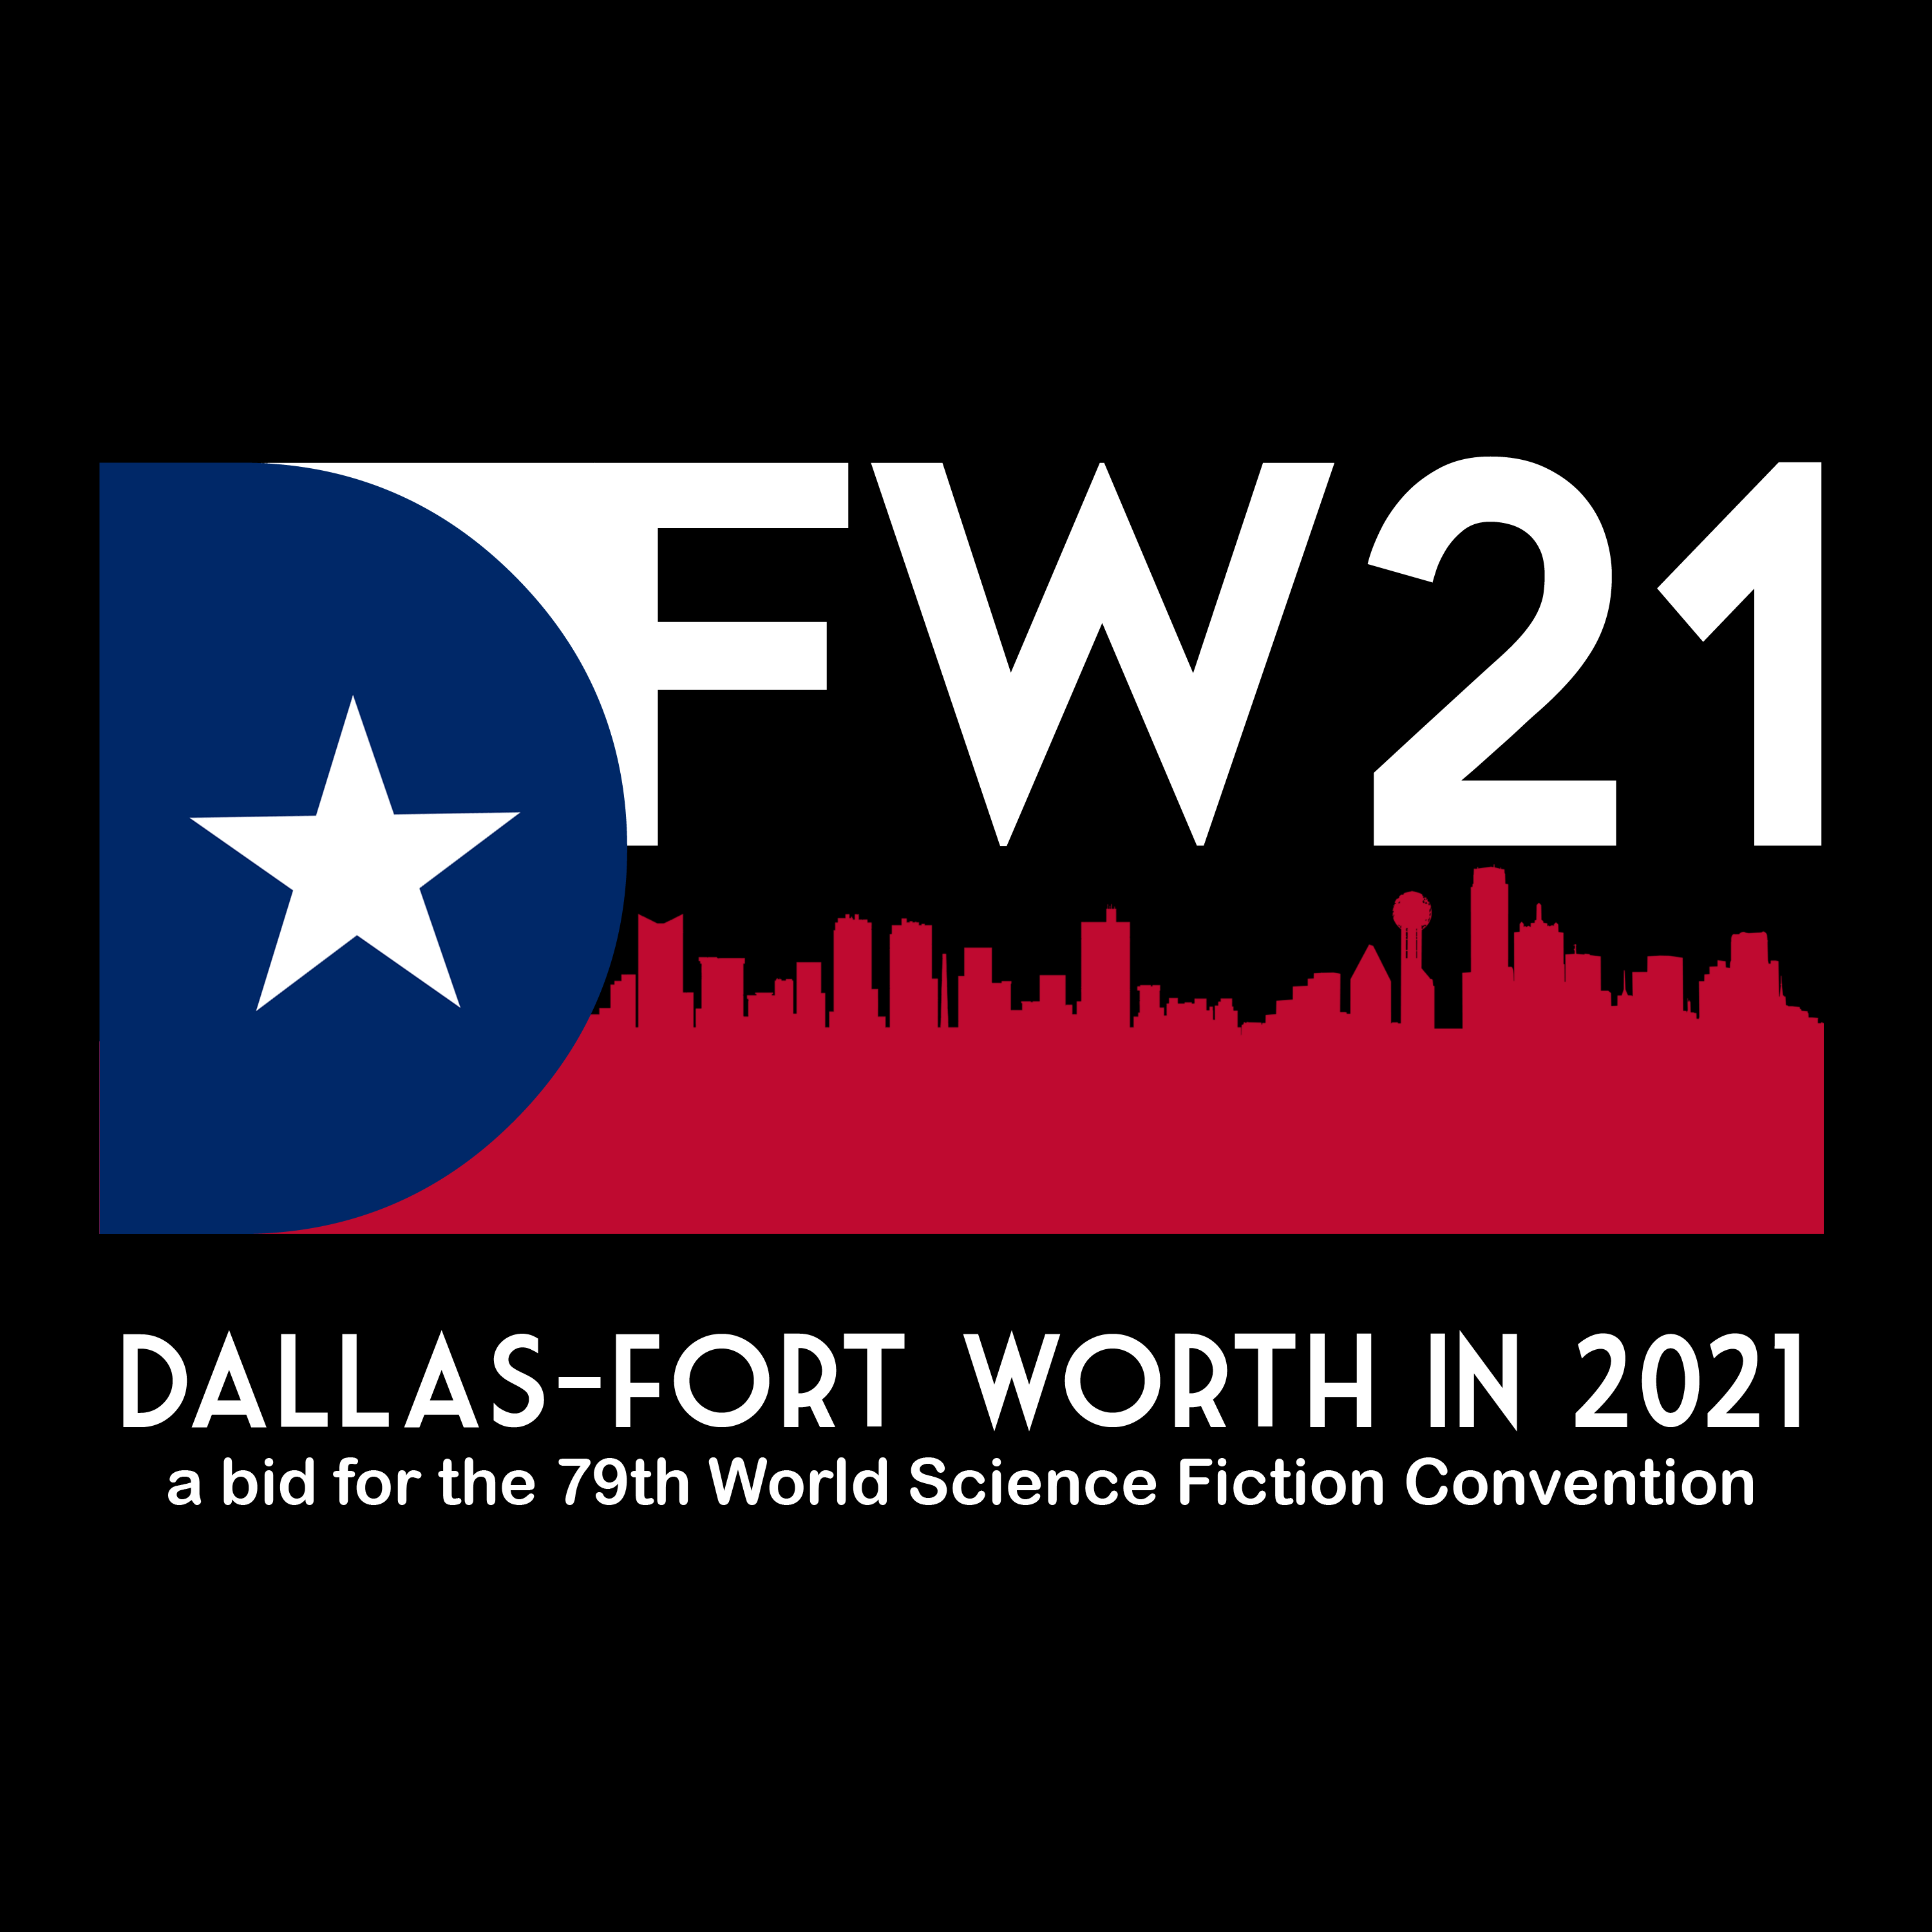 DFW21 - Dallas/Fort Worth, Texas